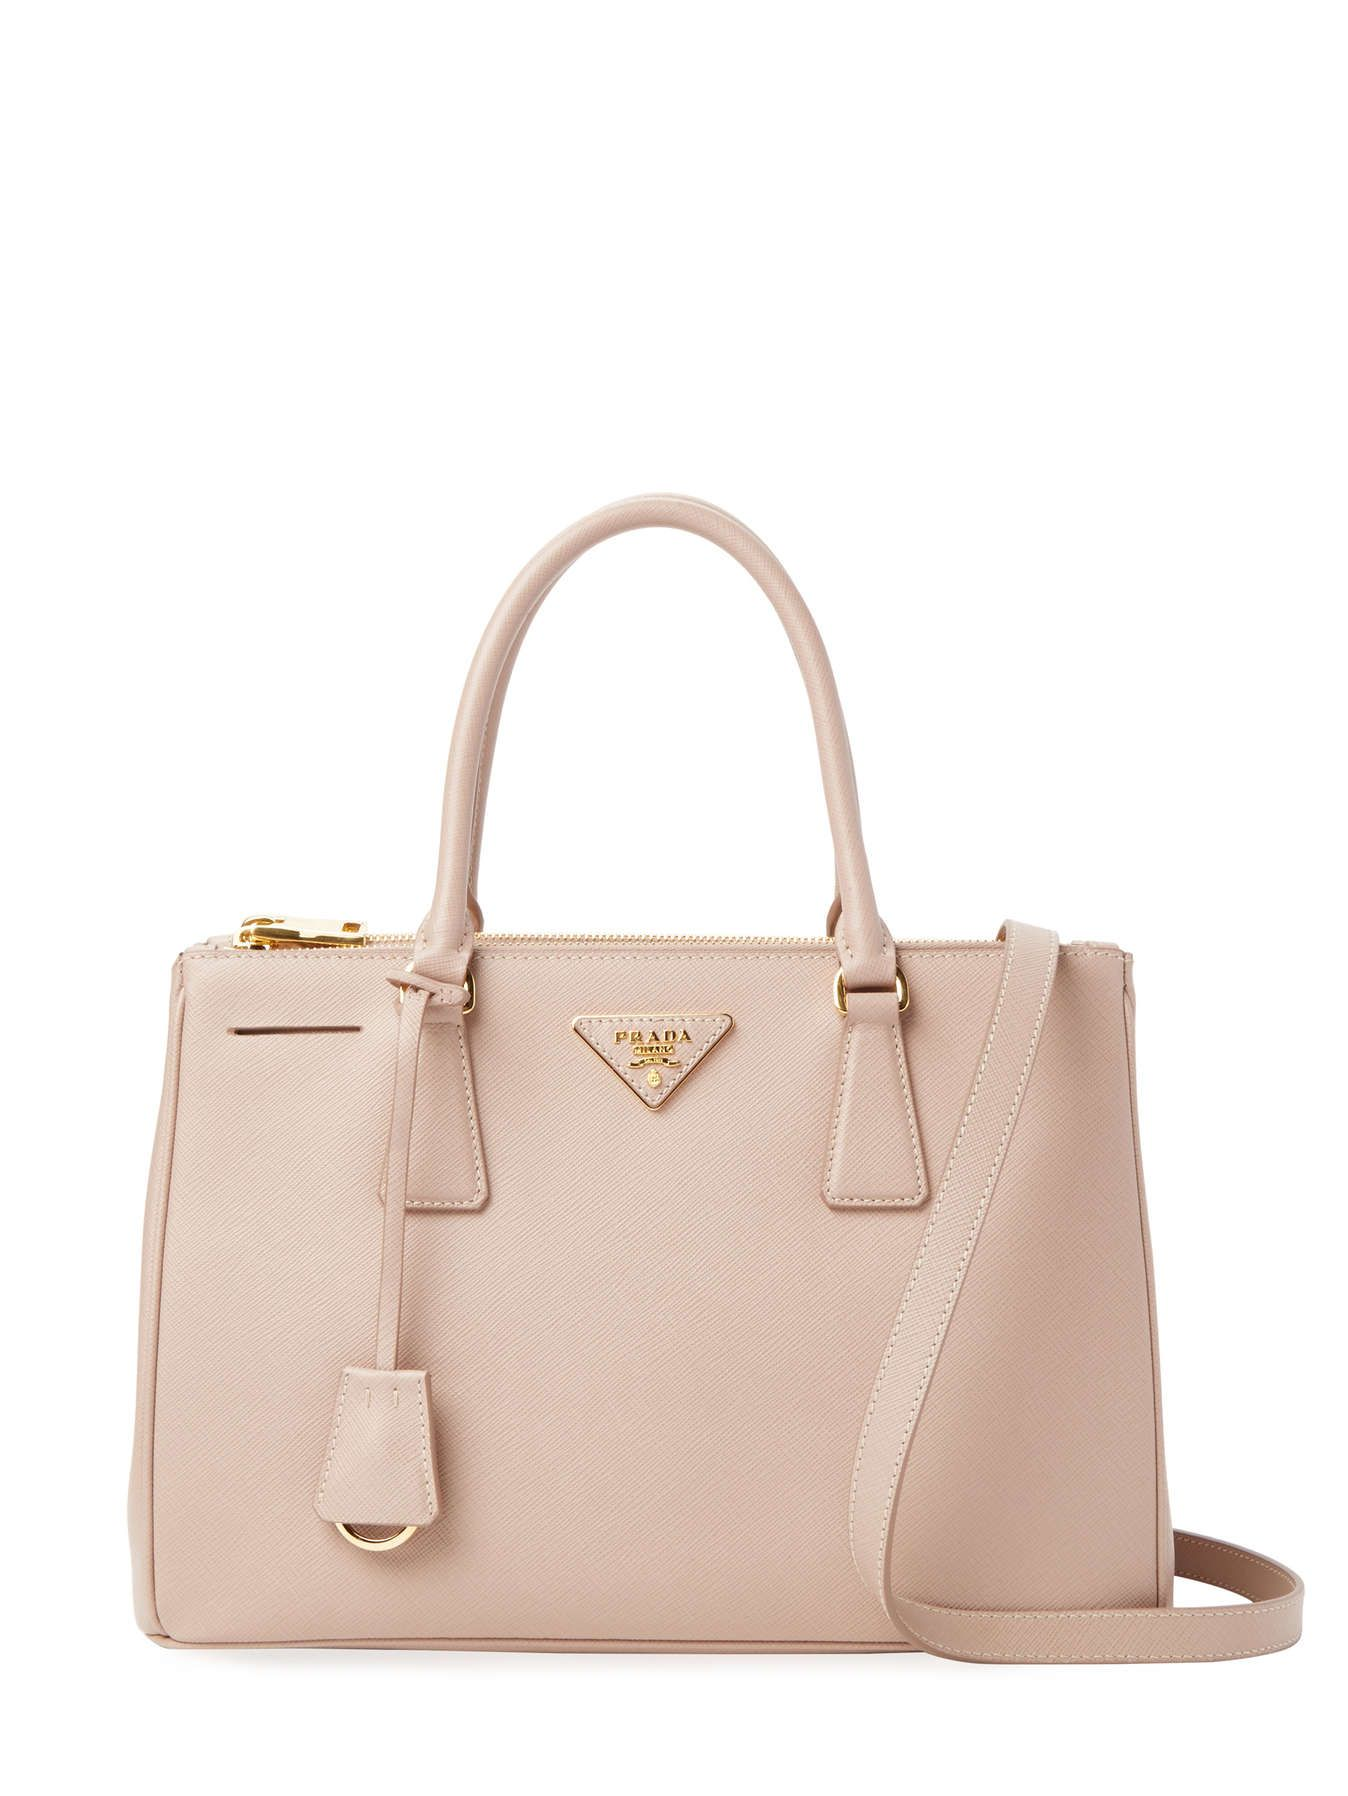 e949580644 Galleria Double Zip Small Saffiano Leather Tote by Prada at Gilt High  Fashion